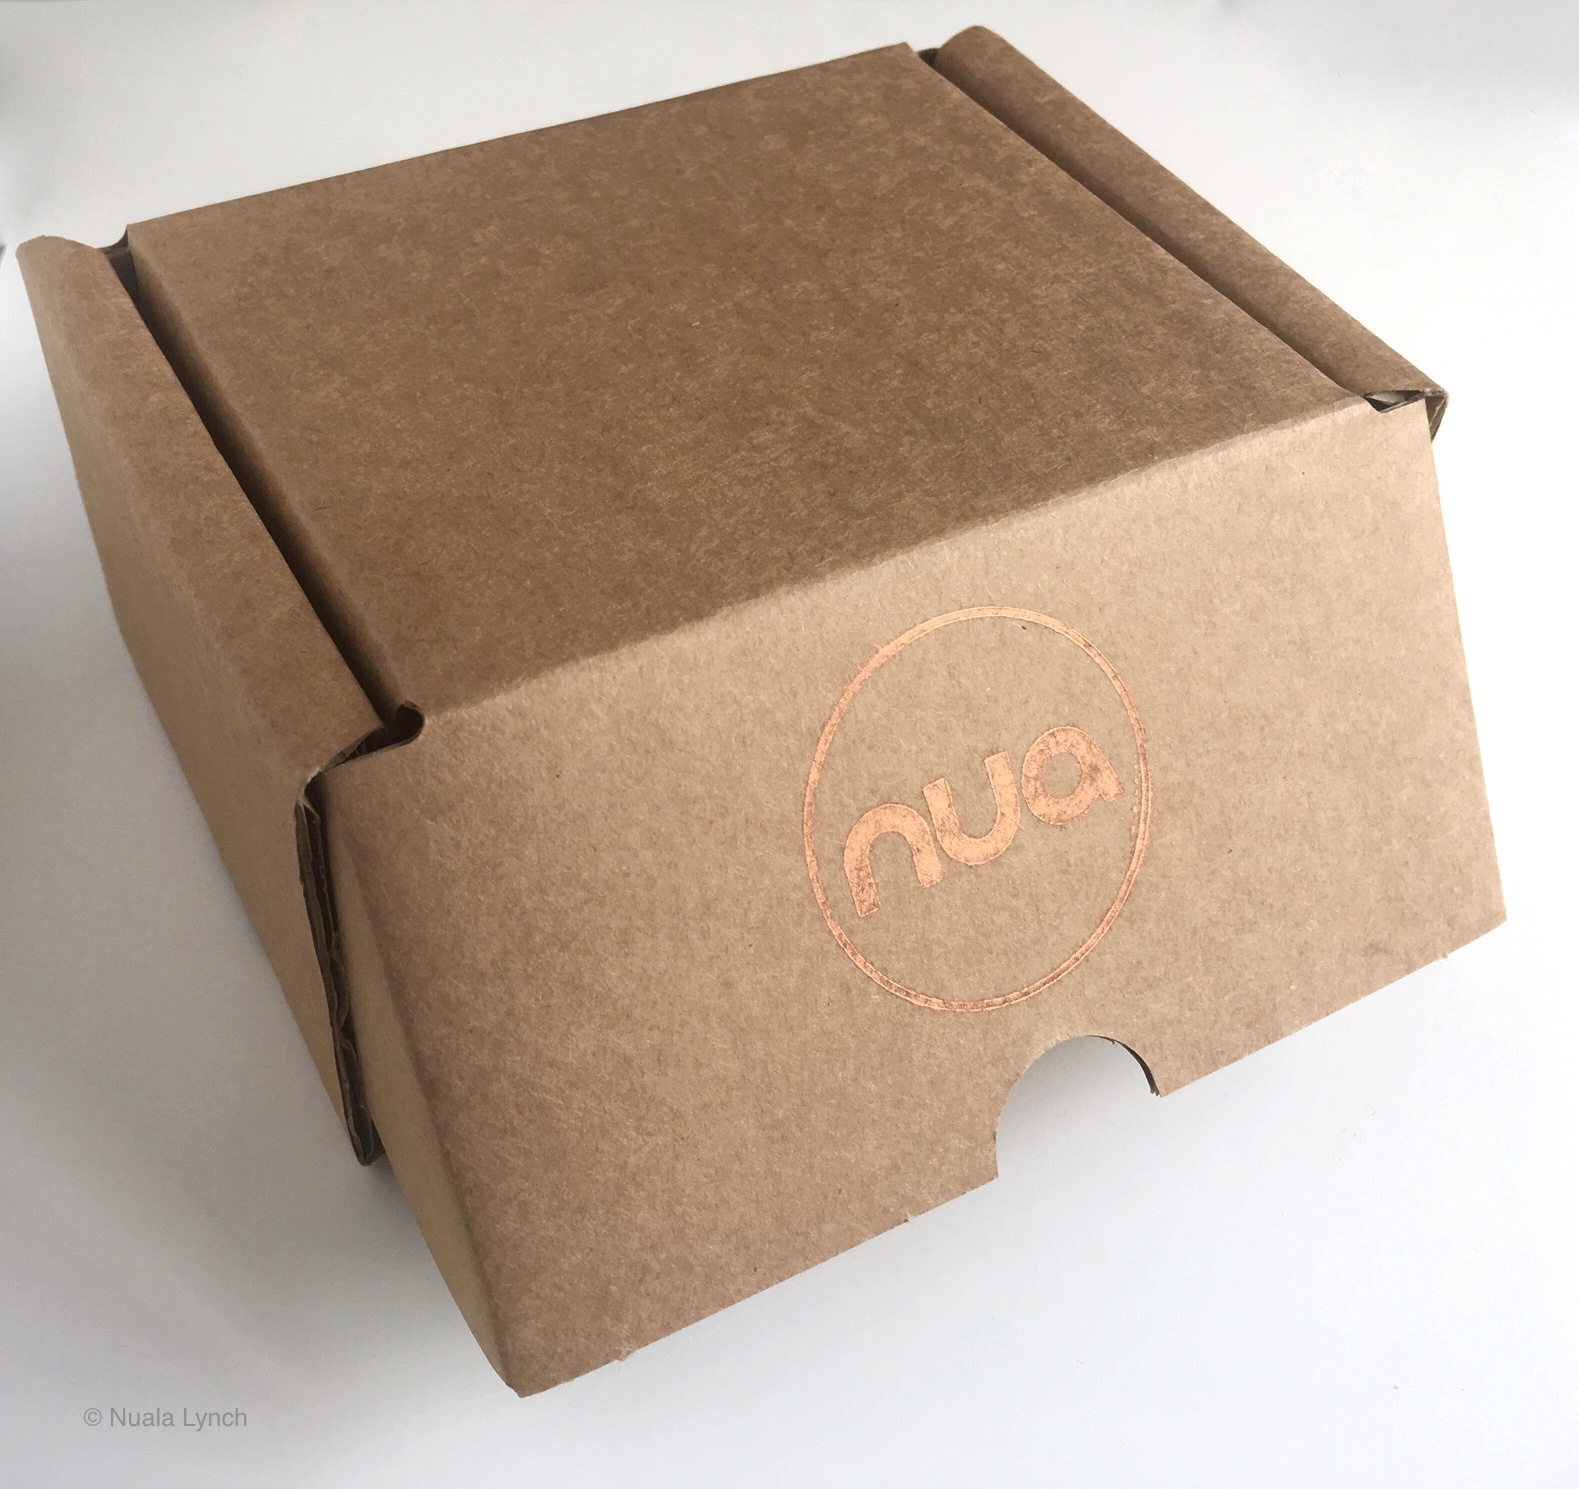 Plastic free. - All nua packaging is now plastic free.